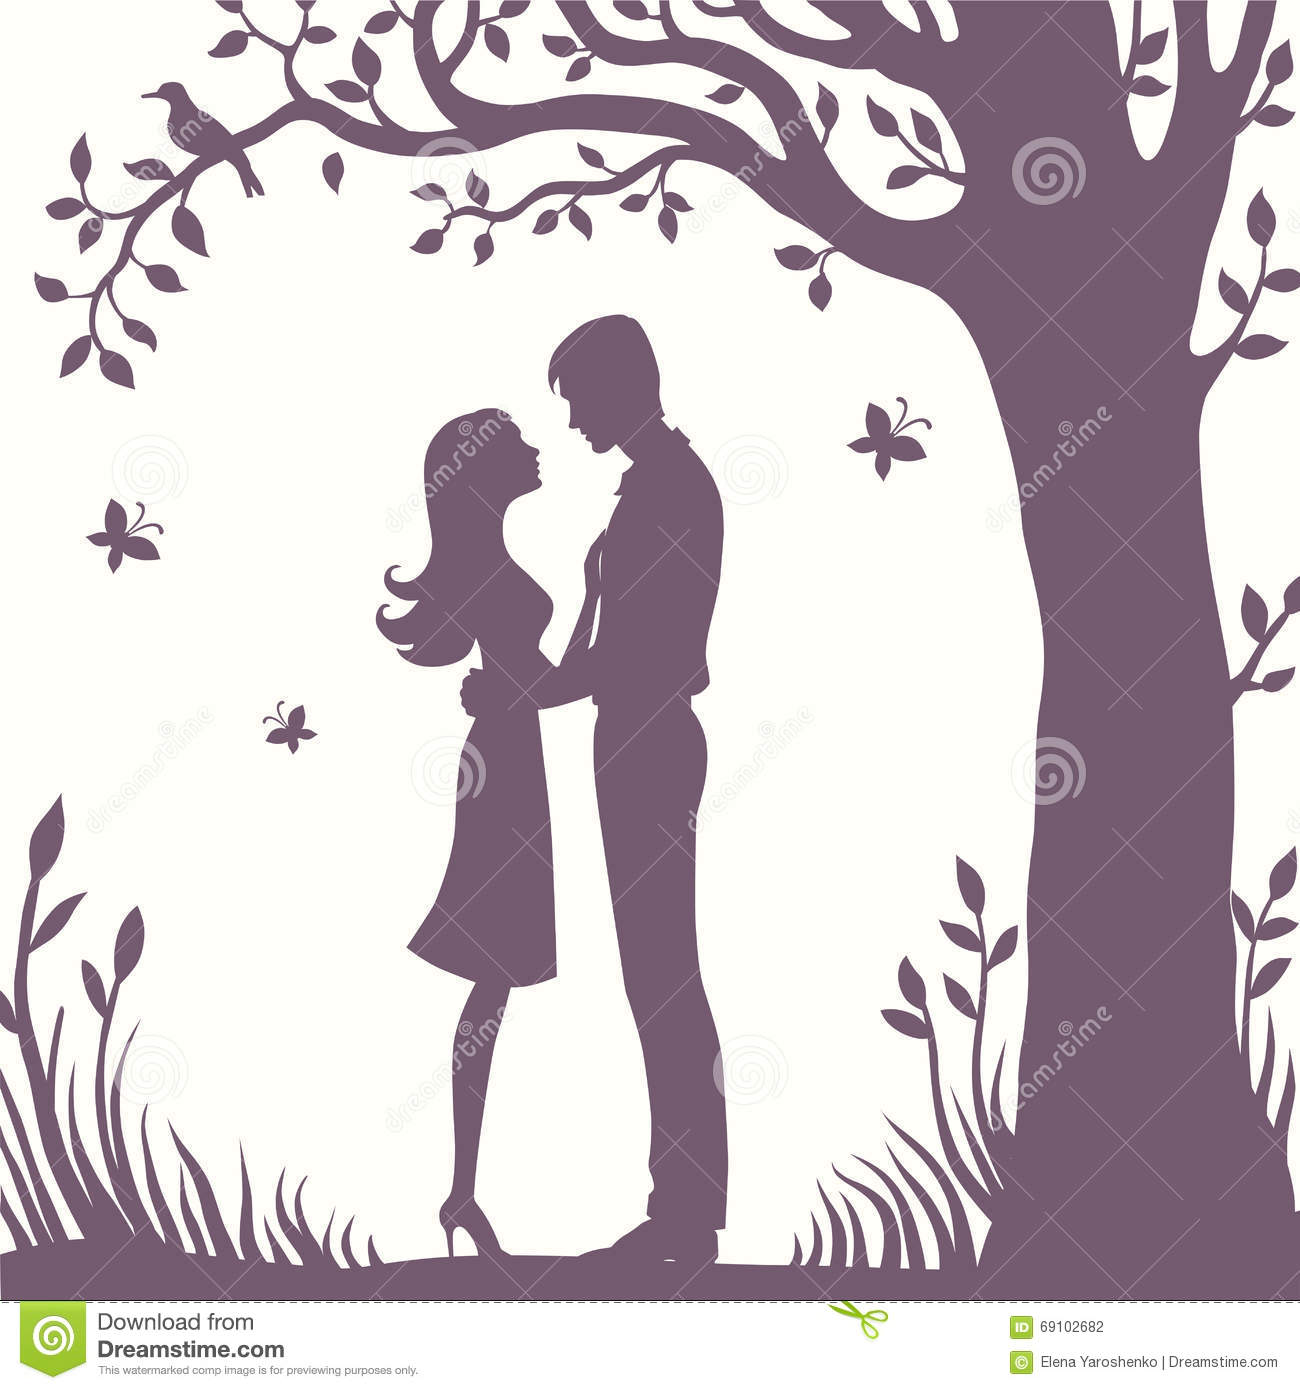 Illustration black silhouette of lovers embracing on a white background